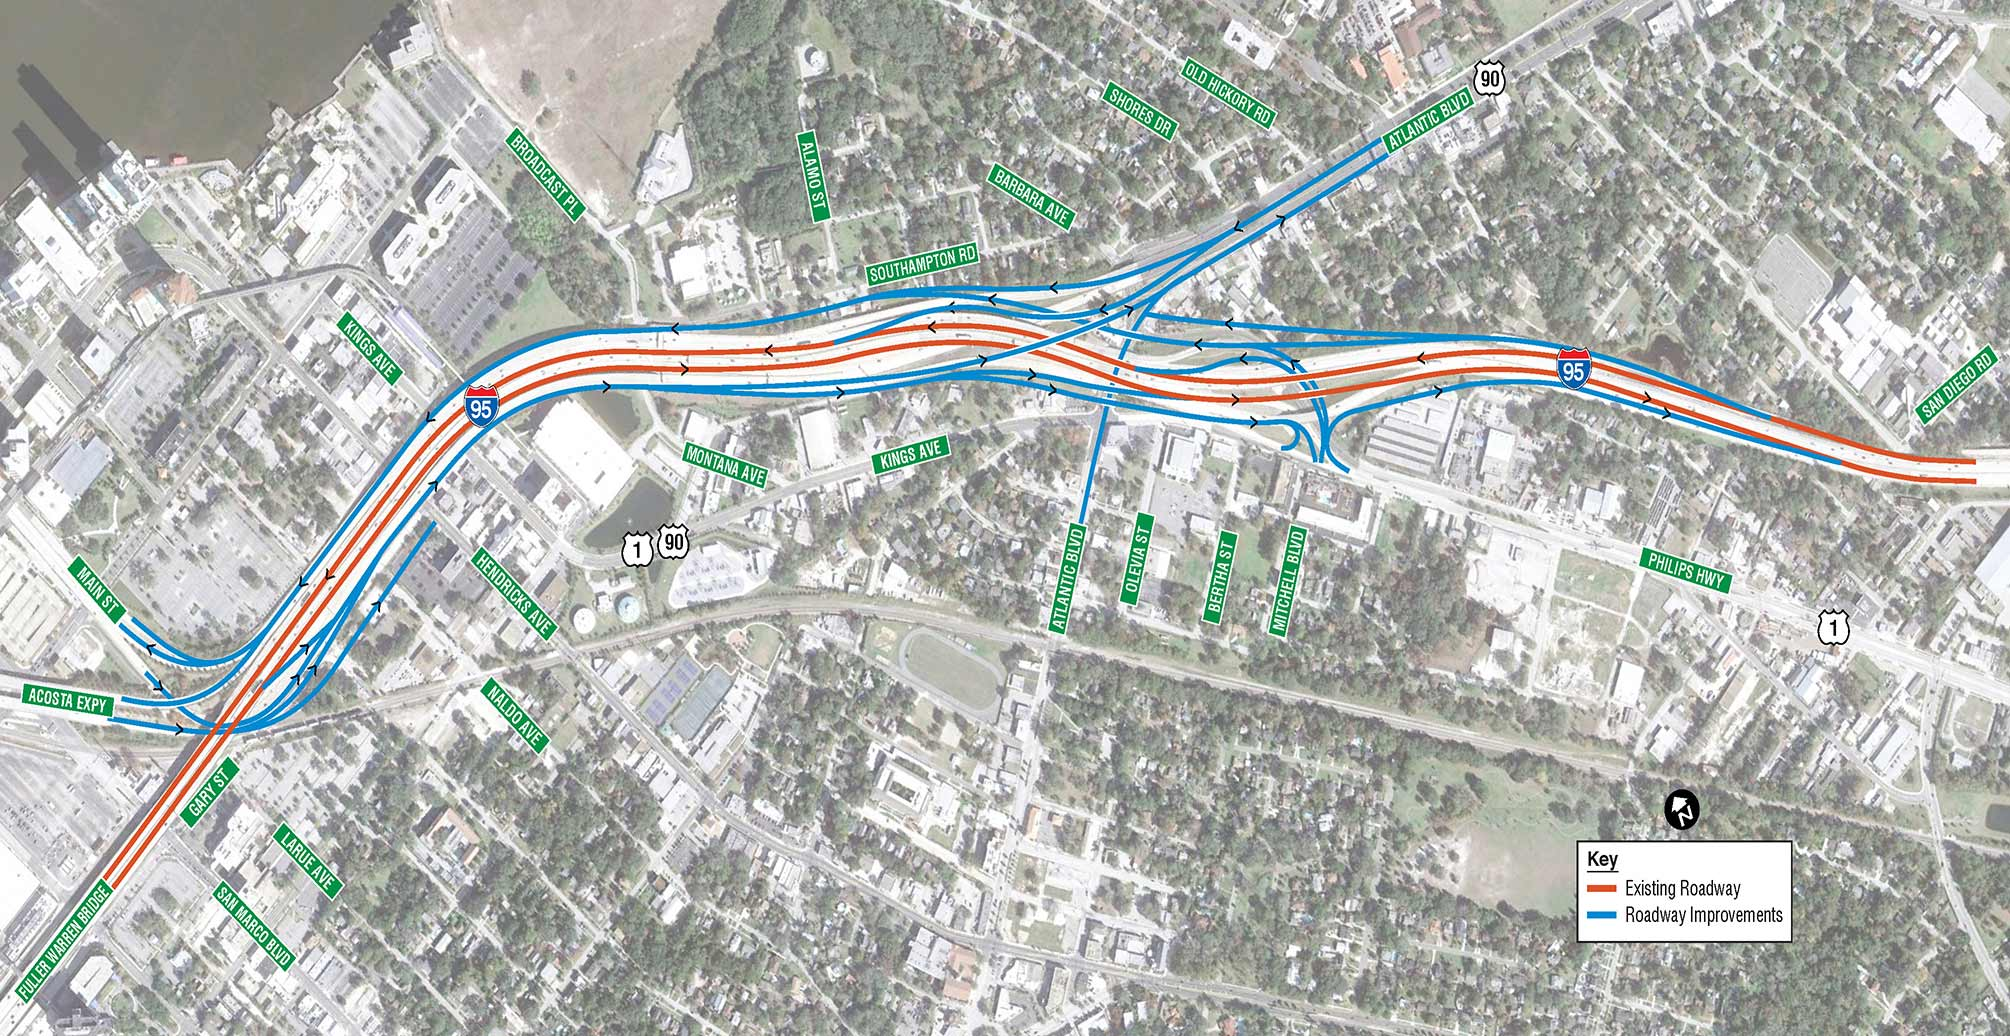 FDOT - I-95 Overland Bridge Replacement Project